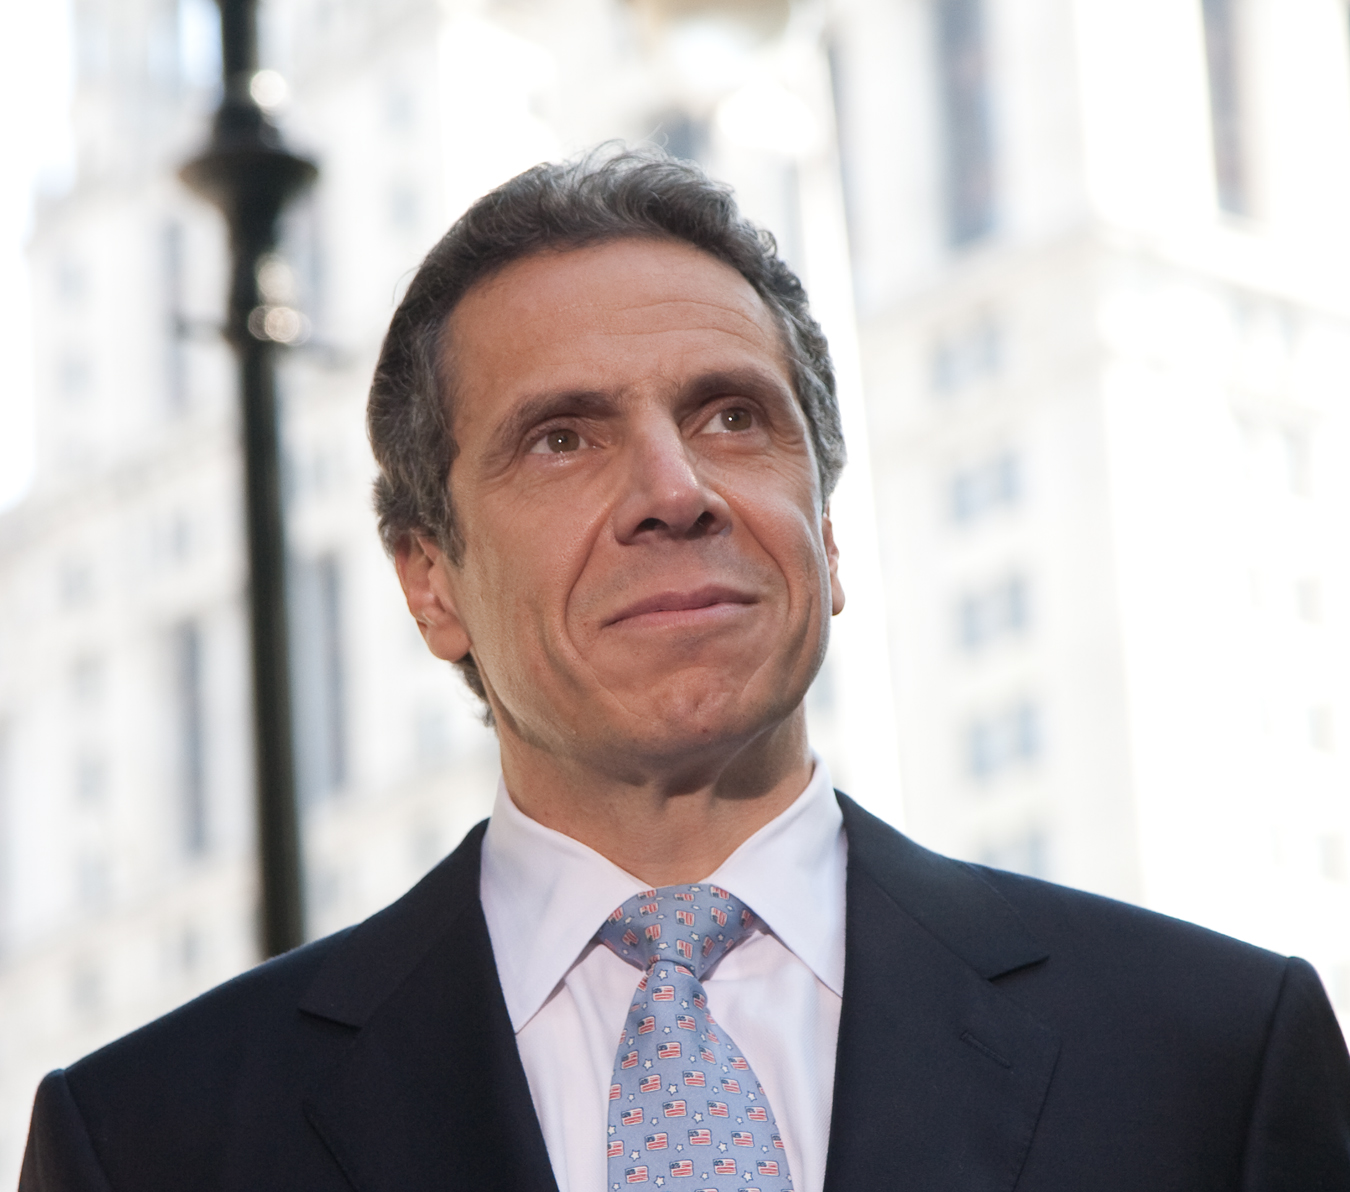 Andrew Cuomo Gets Pay Raise While New Yorkers Suffer Amid Pandemic